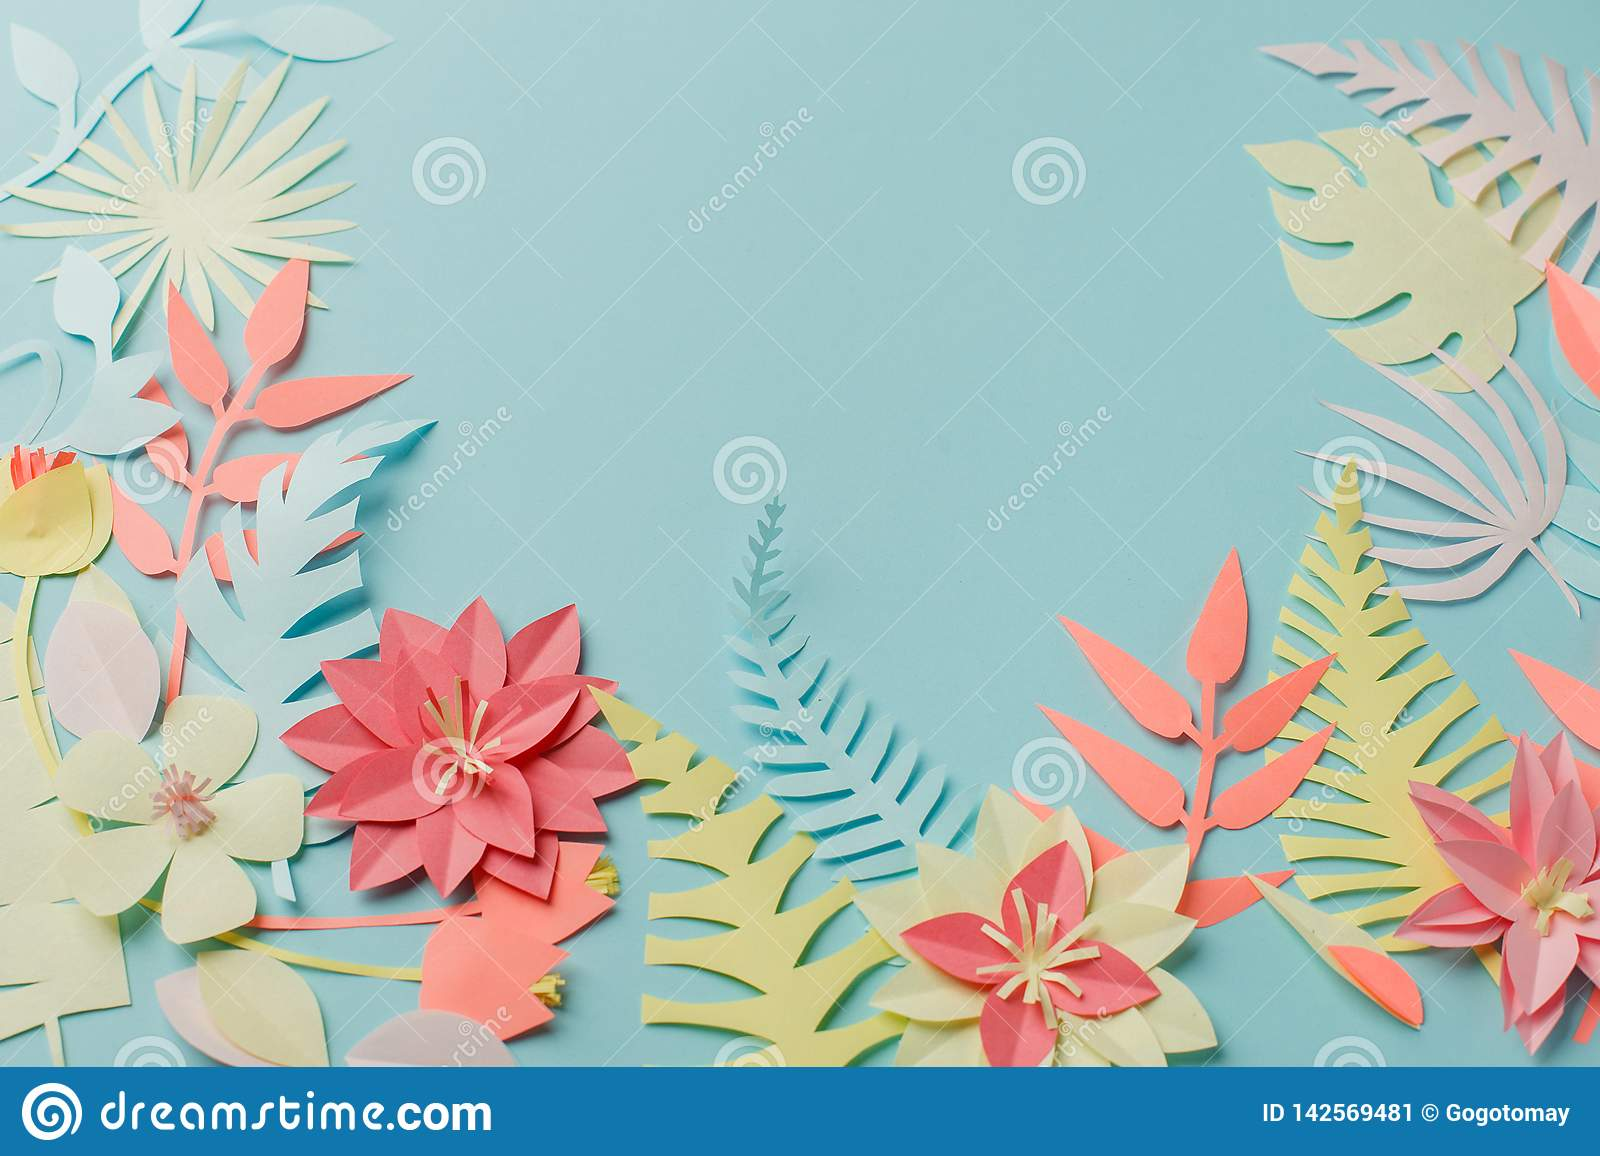 Muted Color Colorful Flower Composition Handmade Papercraft